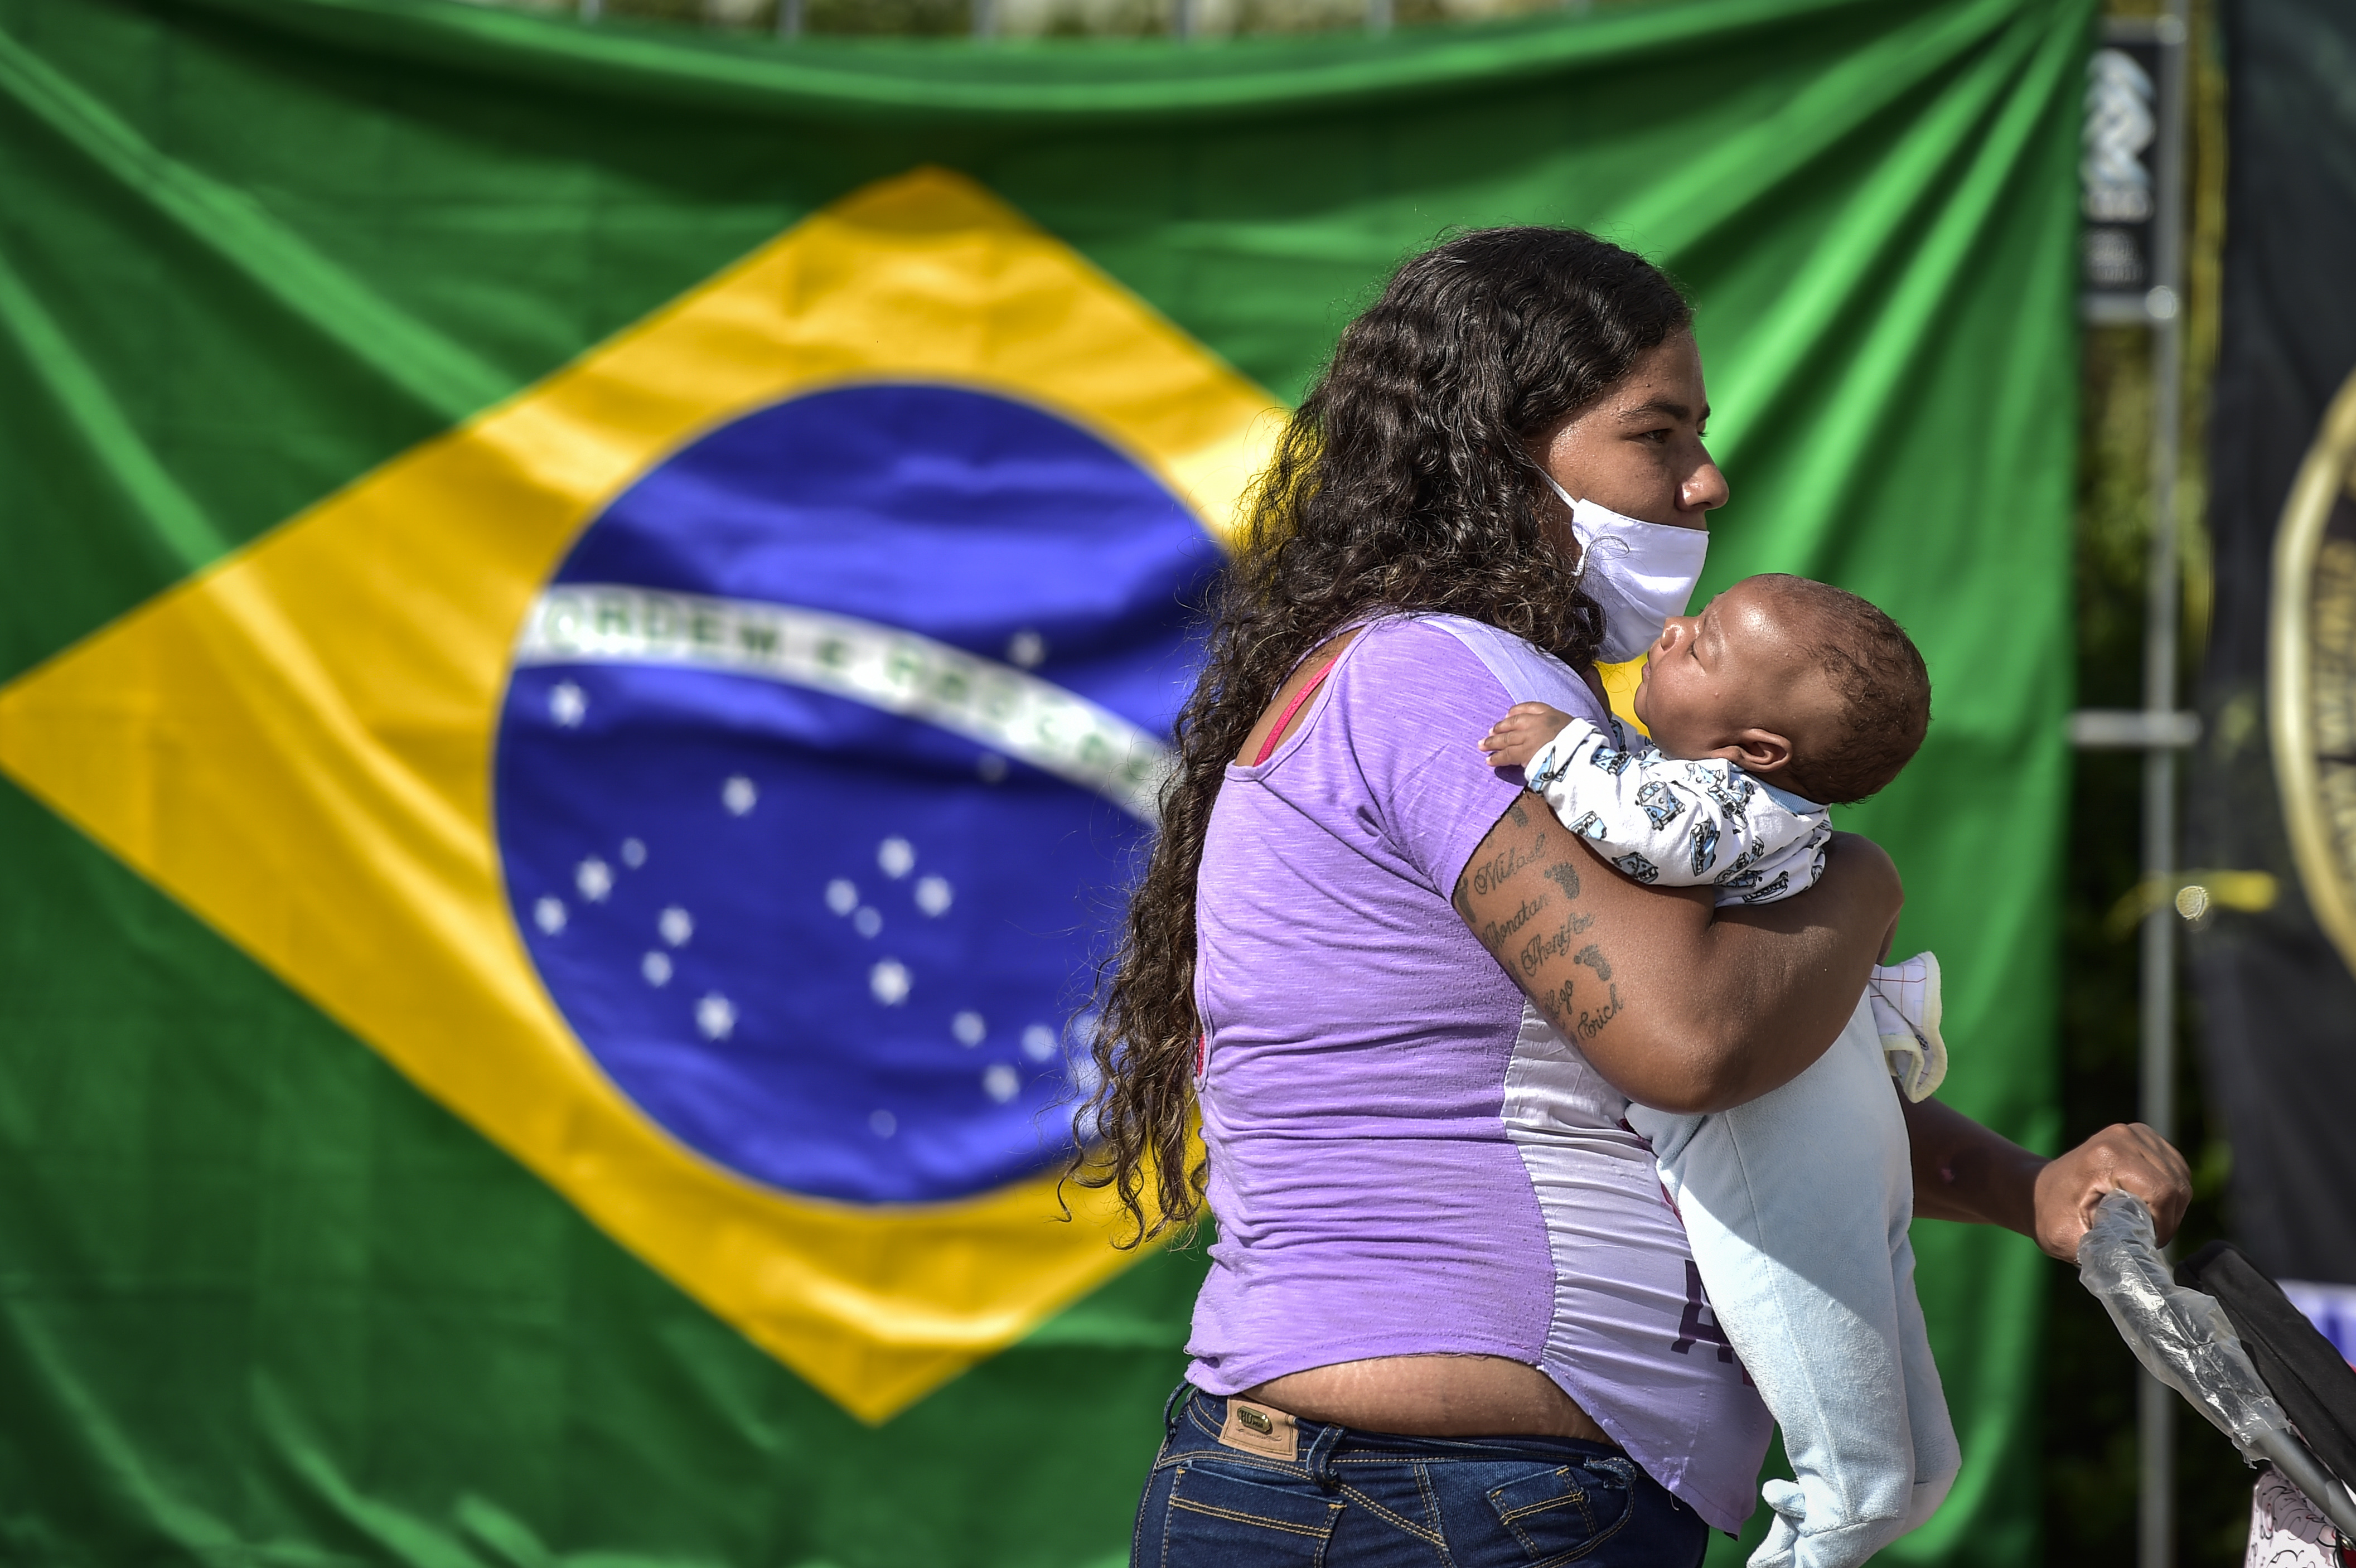 BELO HORIZONTE, BRAZIL - JUNE 05: A woman waits with hel child in line to receive lunch at Praça da Estação on June 5, 2020 in Belo Horizonte, Brazil. About 3000 meals are being distributed every Friday to poor residents, in addition to food, fruit and water. The campaign is carried out by a bank credit company in Belo Horizonte. (Photo by Pedro Vilela/Getty Images)